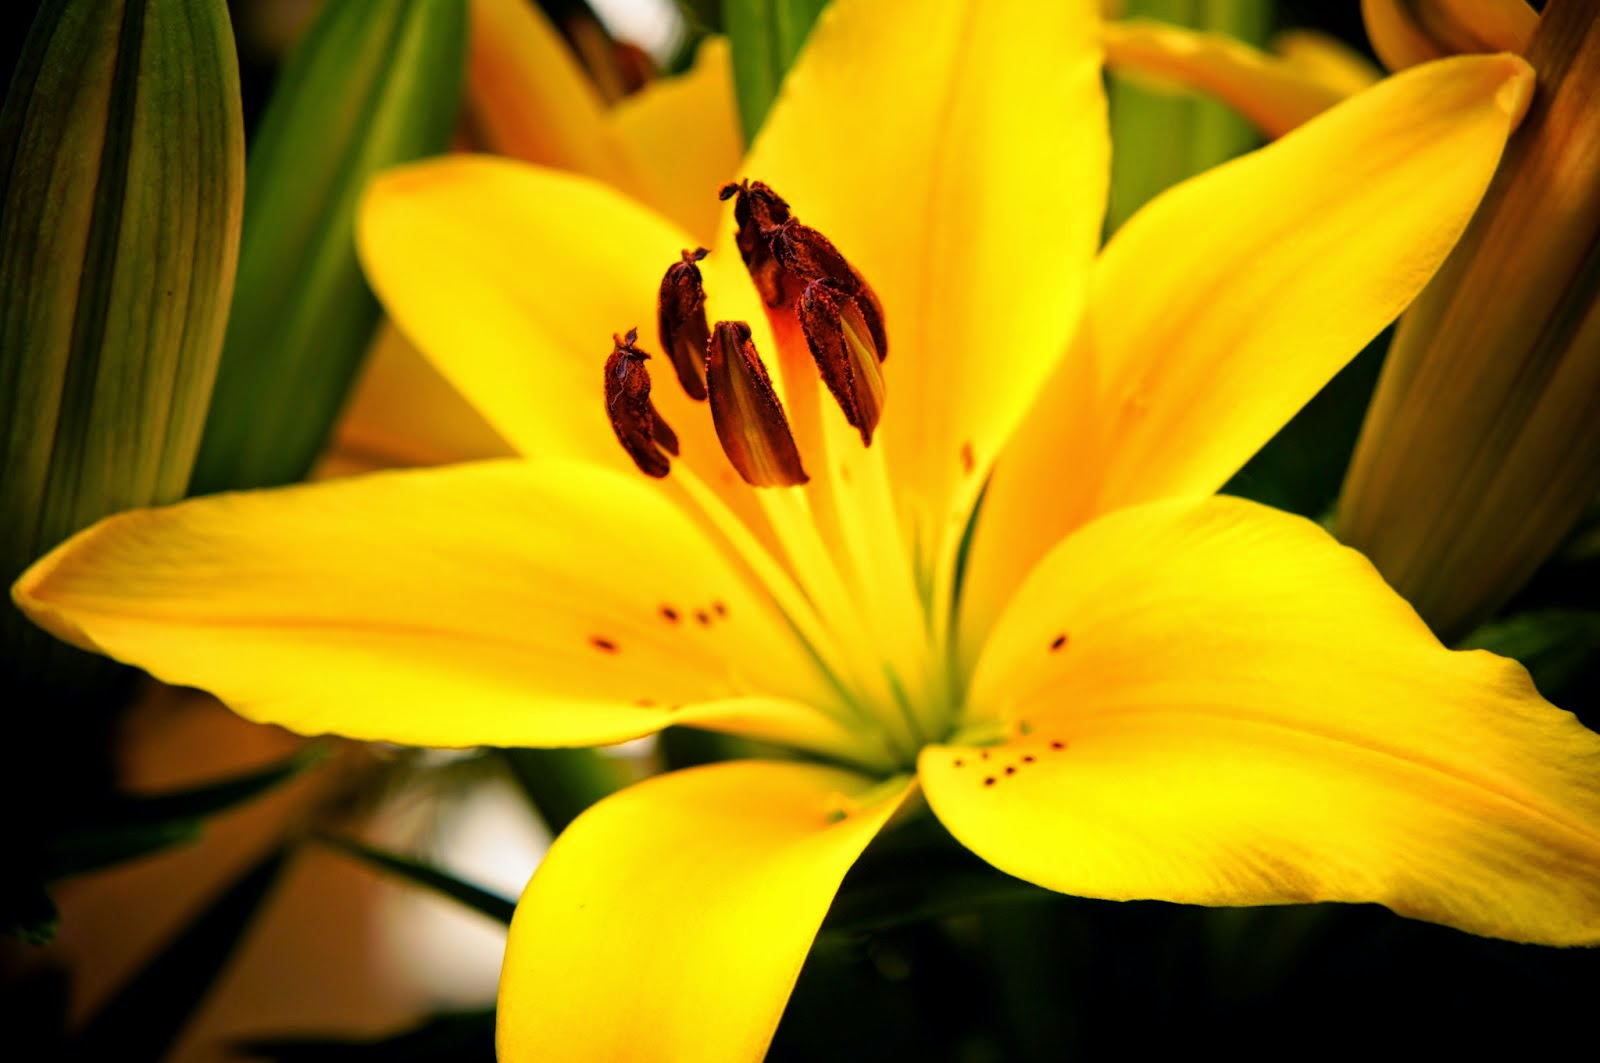 unedited public domain picture of a beautiful yellow flower